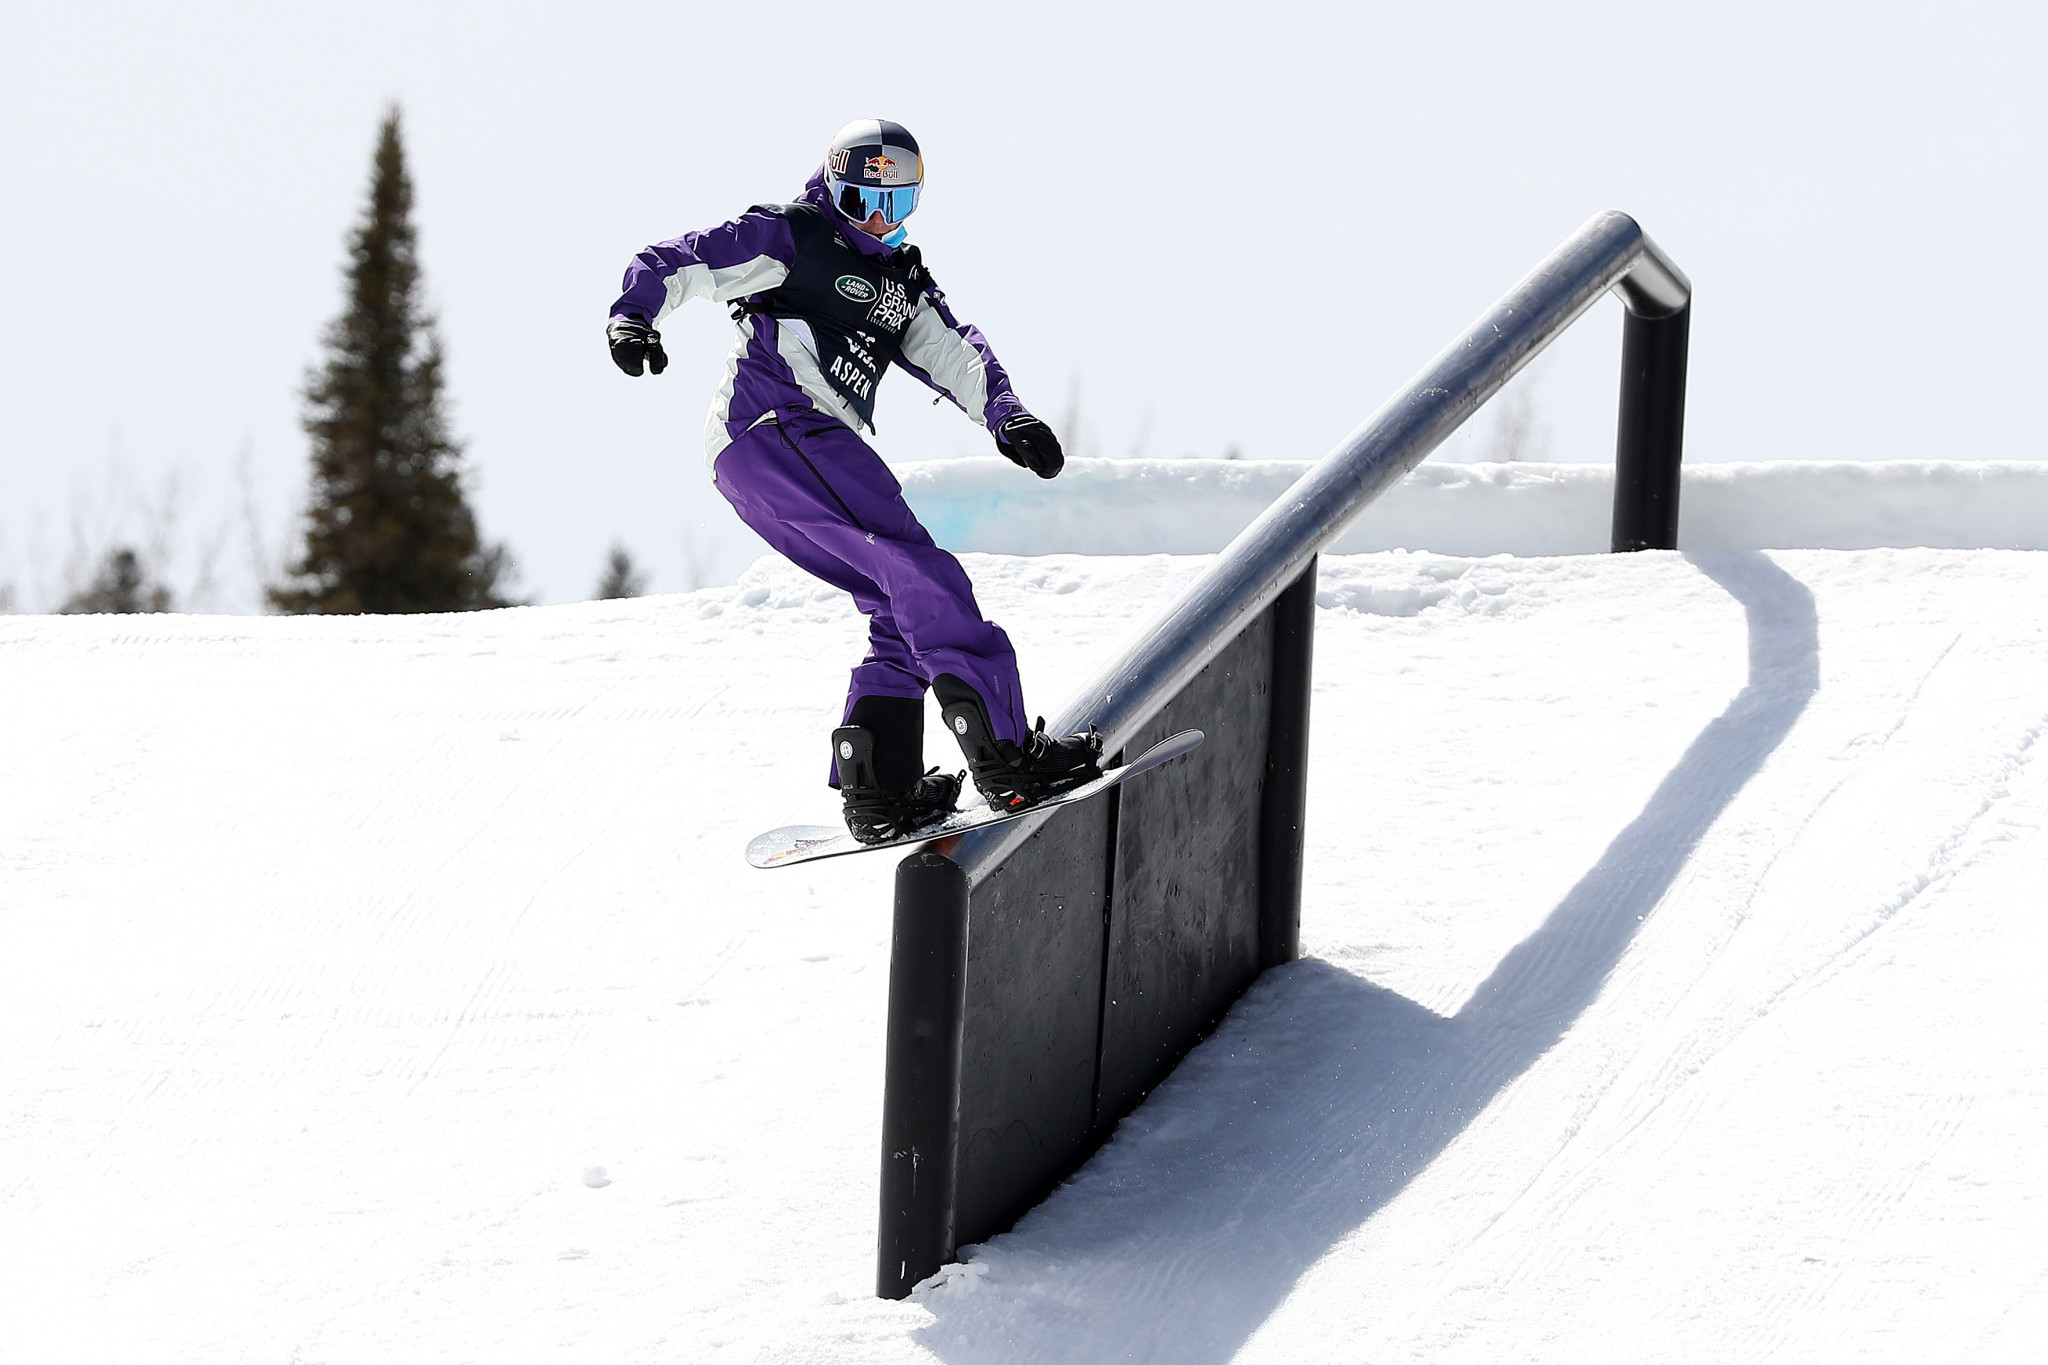 FIS considering slopestyle changes in a bid to engage viewers